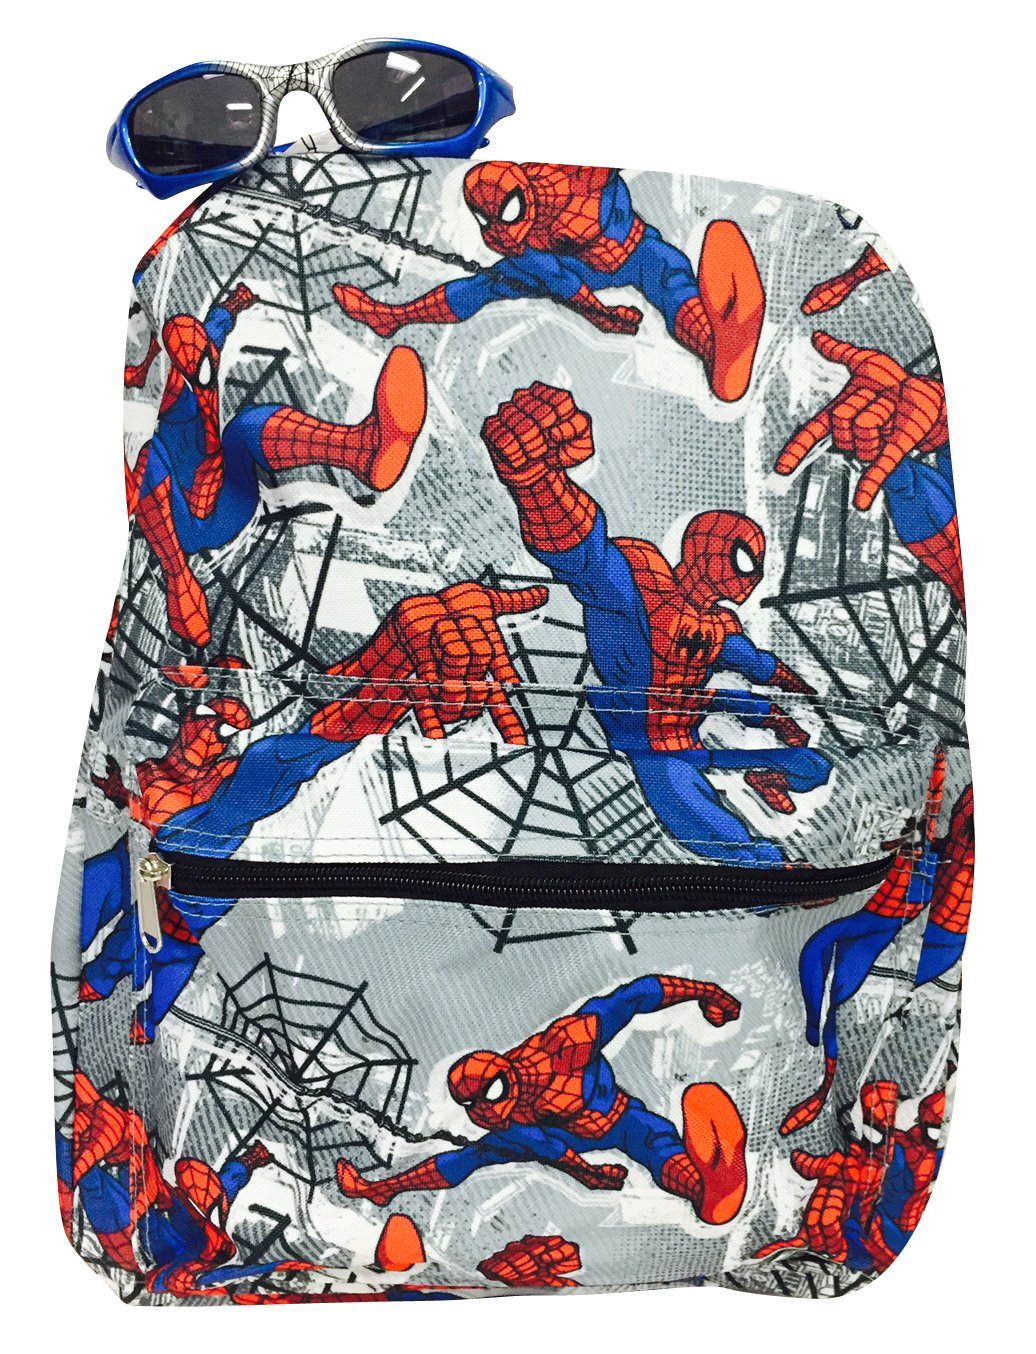 Colorful Items 16'' Full Print Super Heroes Spider-Man Backpack and One Stylish Sunglasses Set